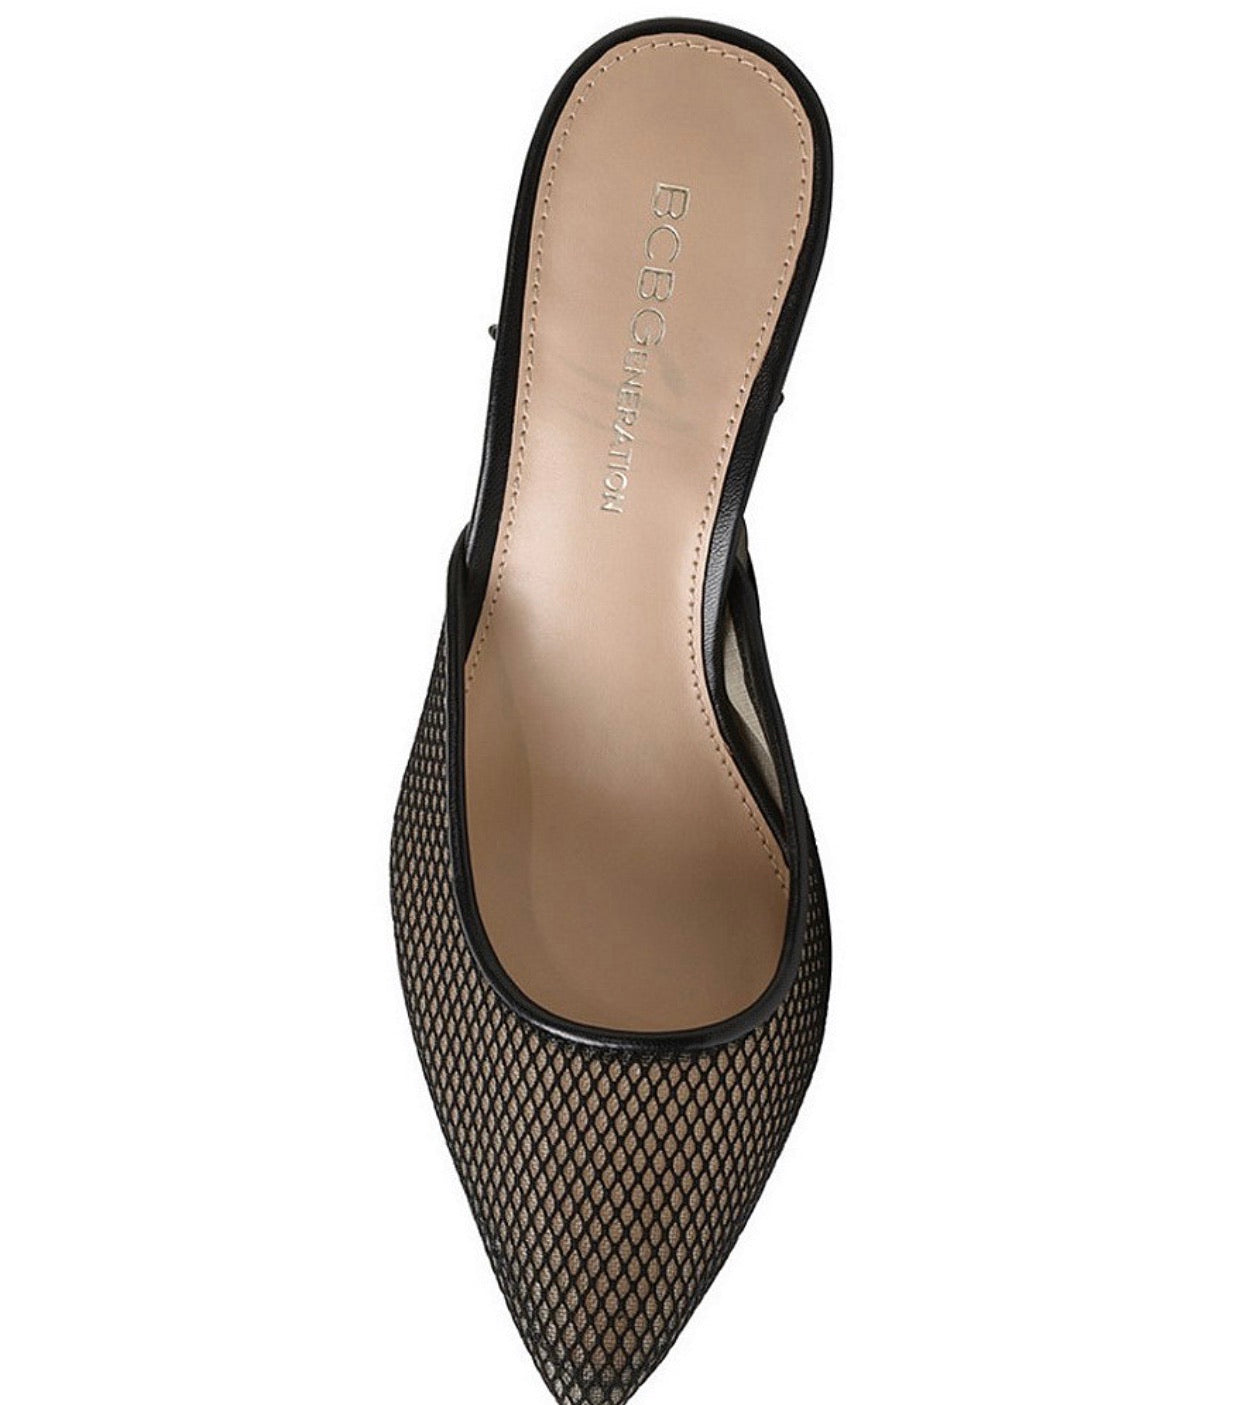 BCBGENERATION MESH POINTED TOE LACE-UP SHOES